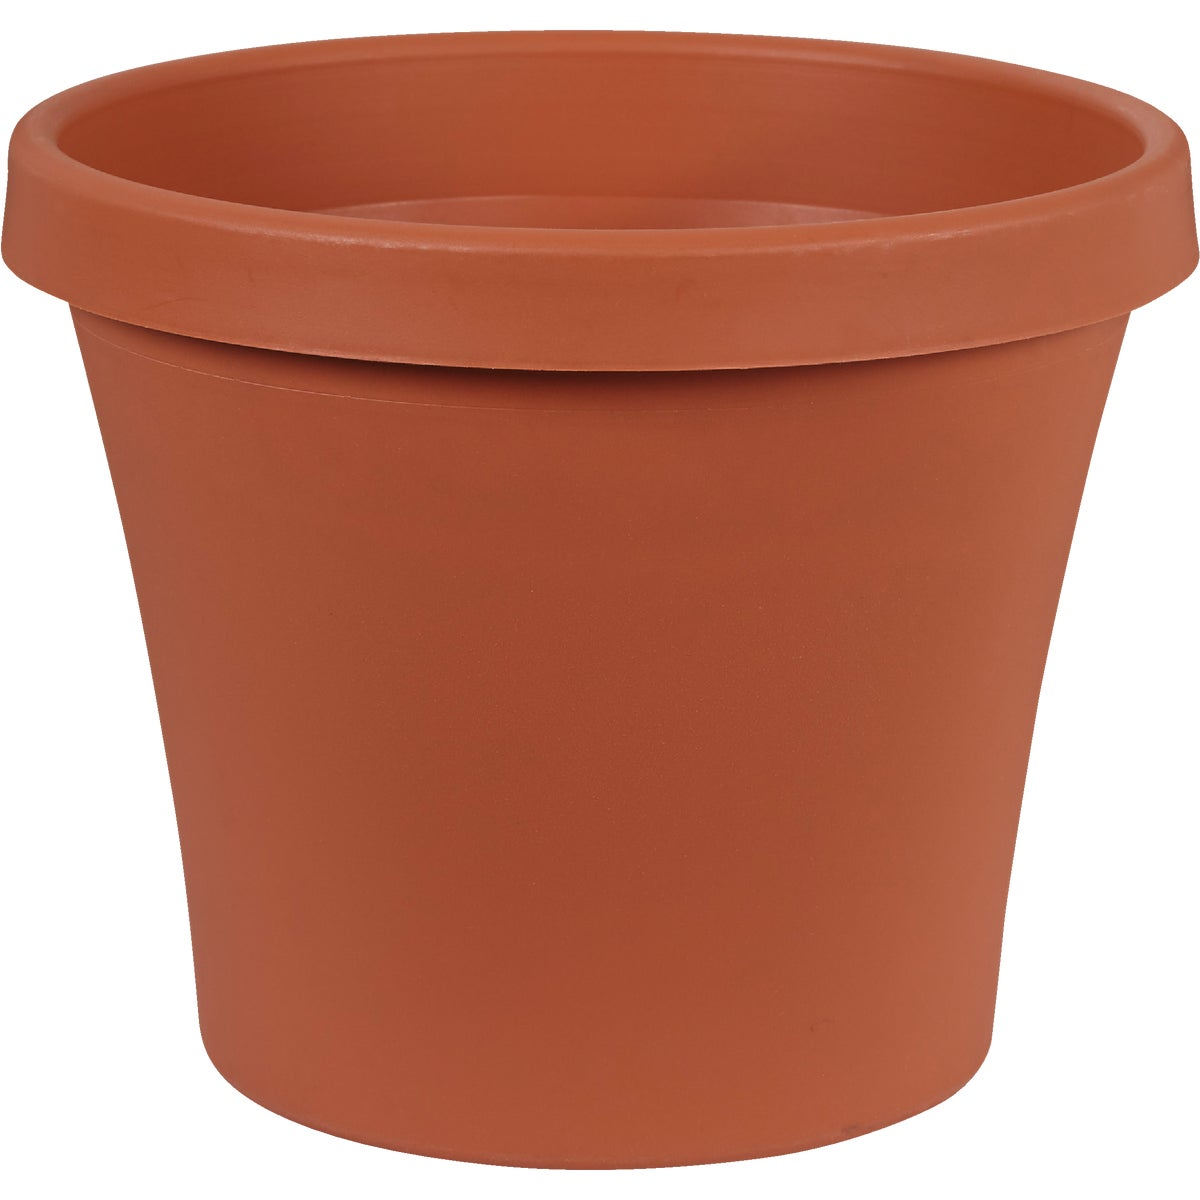 "20"" CLAY POLY POT - 50020C by Fiskars Brands Inc"